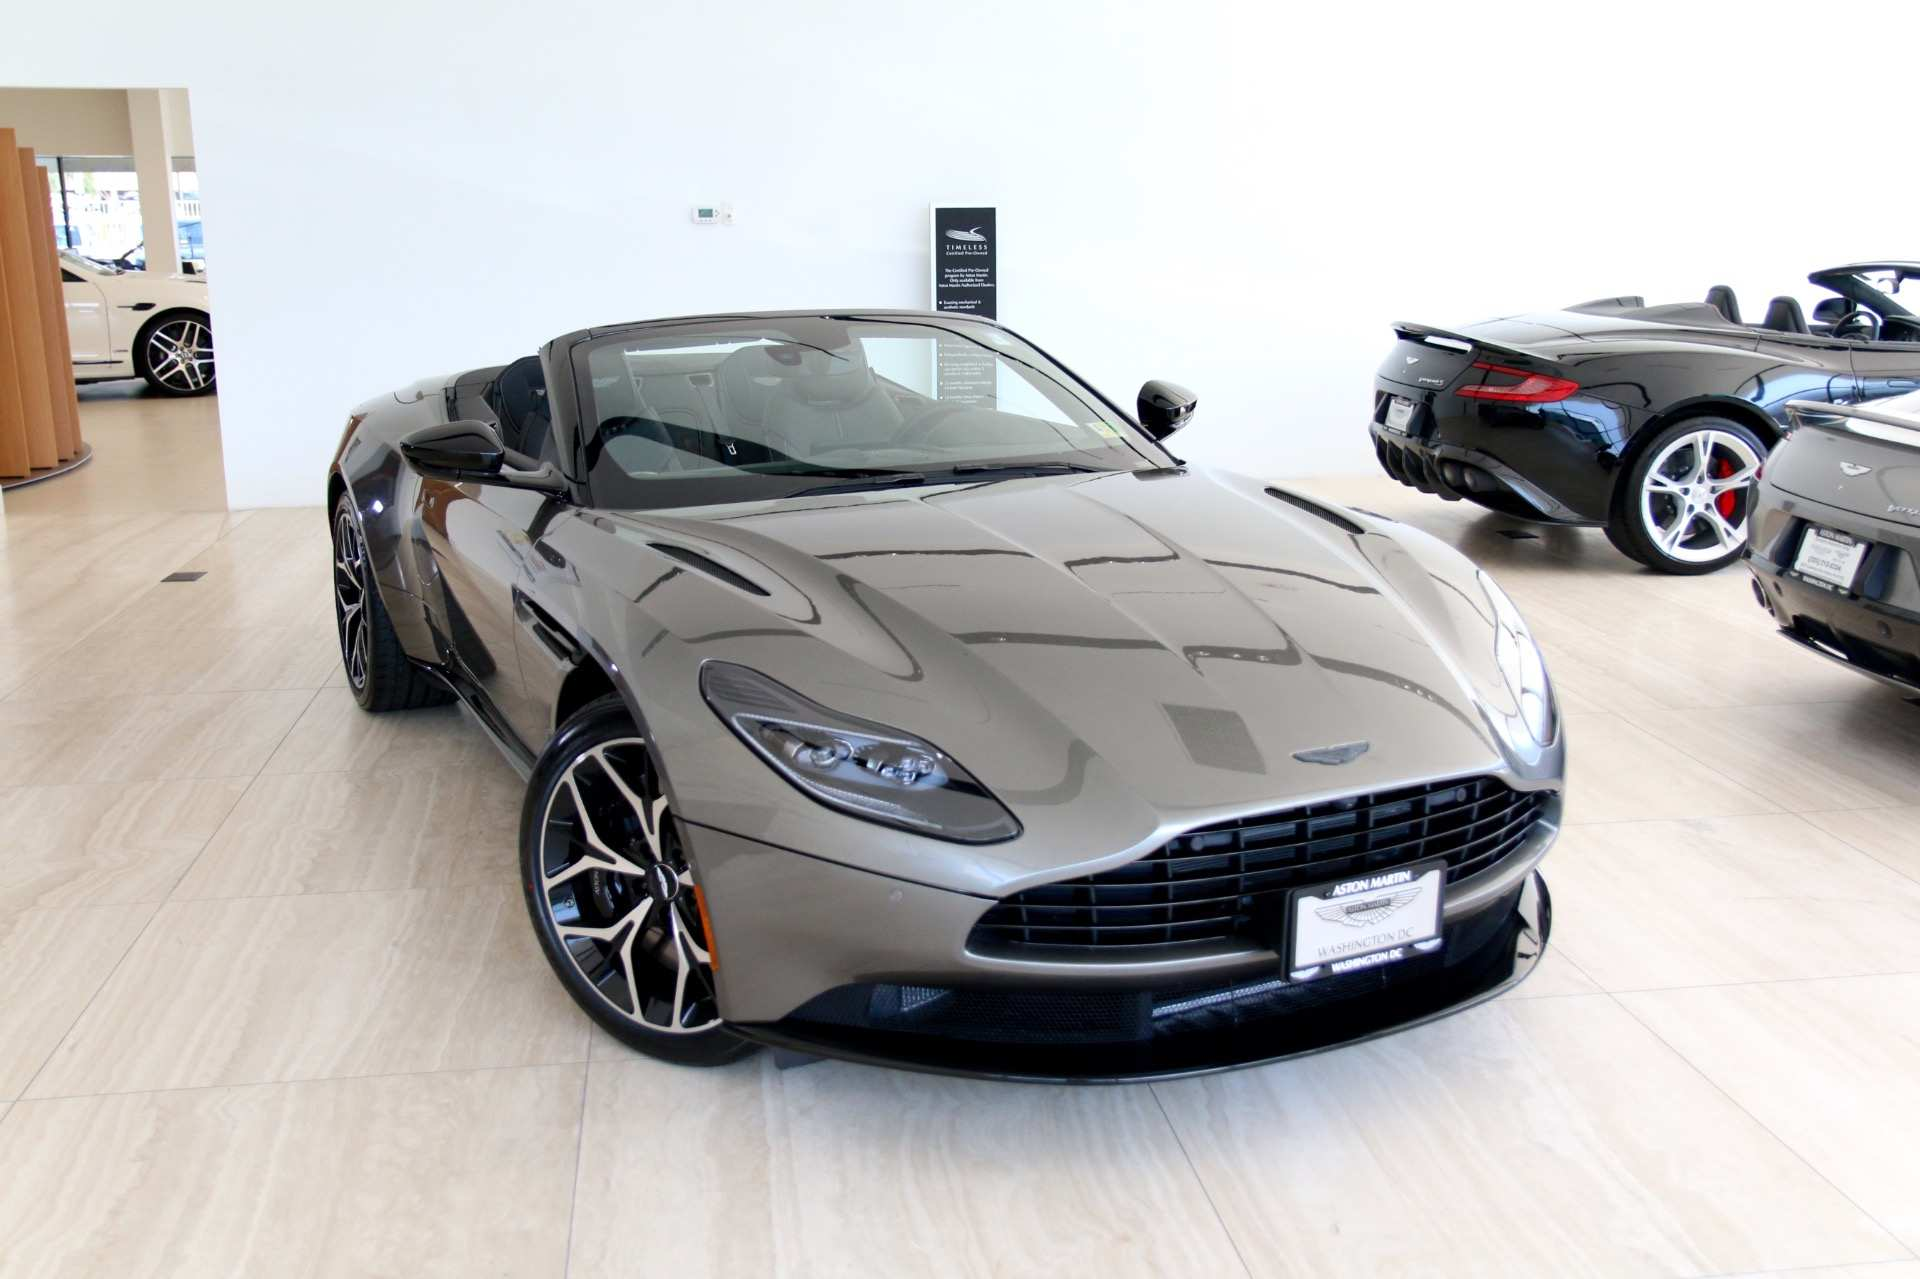 98 Best Review 2019 Aston Martin Db11 Picture by 2019 Aston Martin Db11